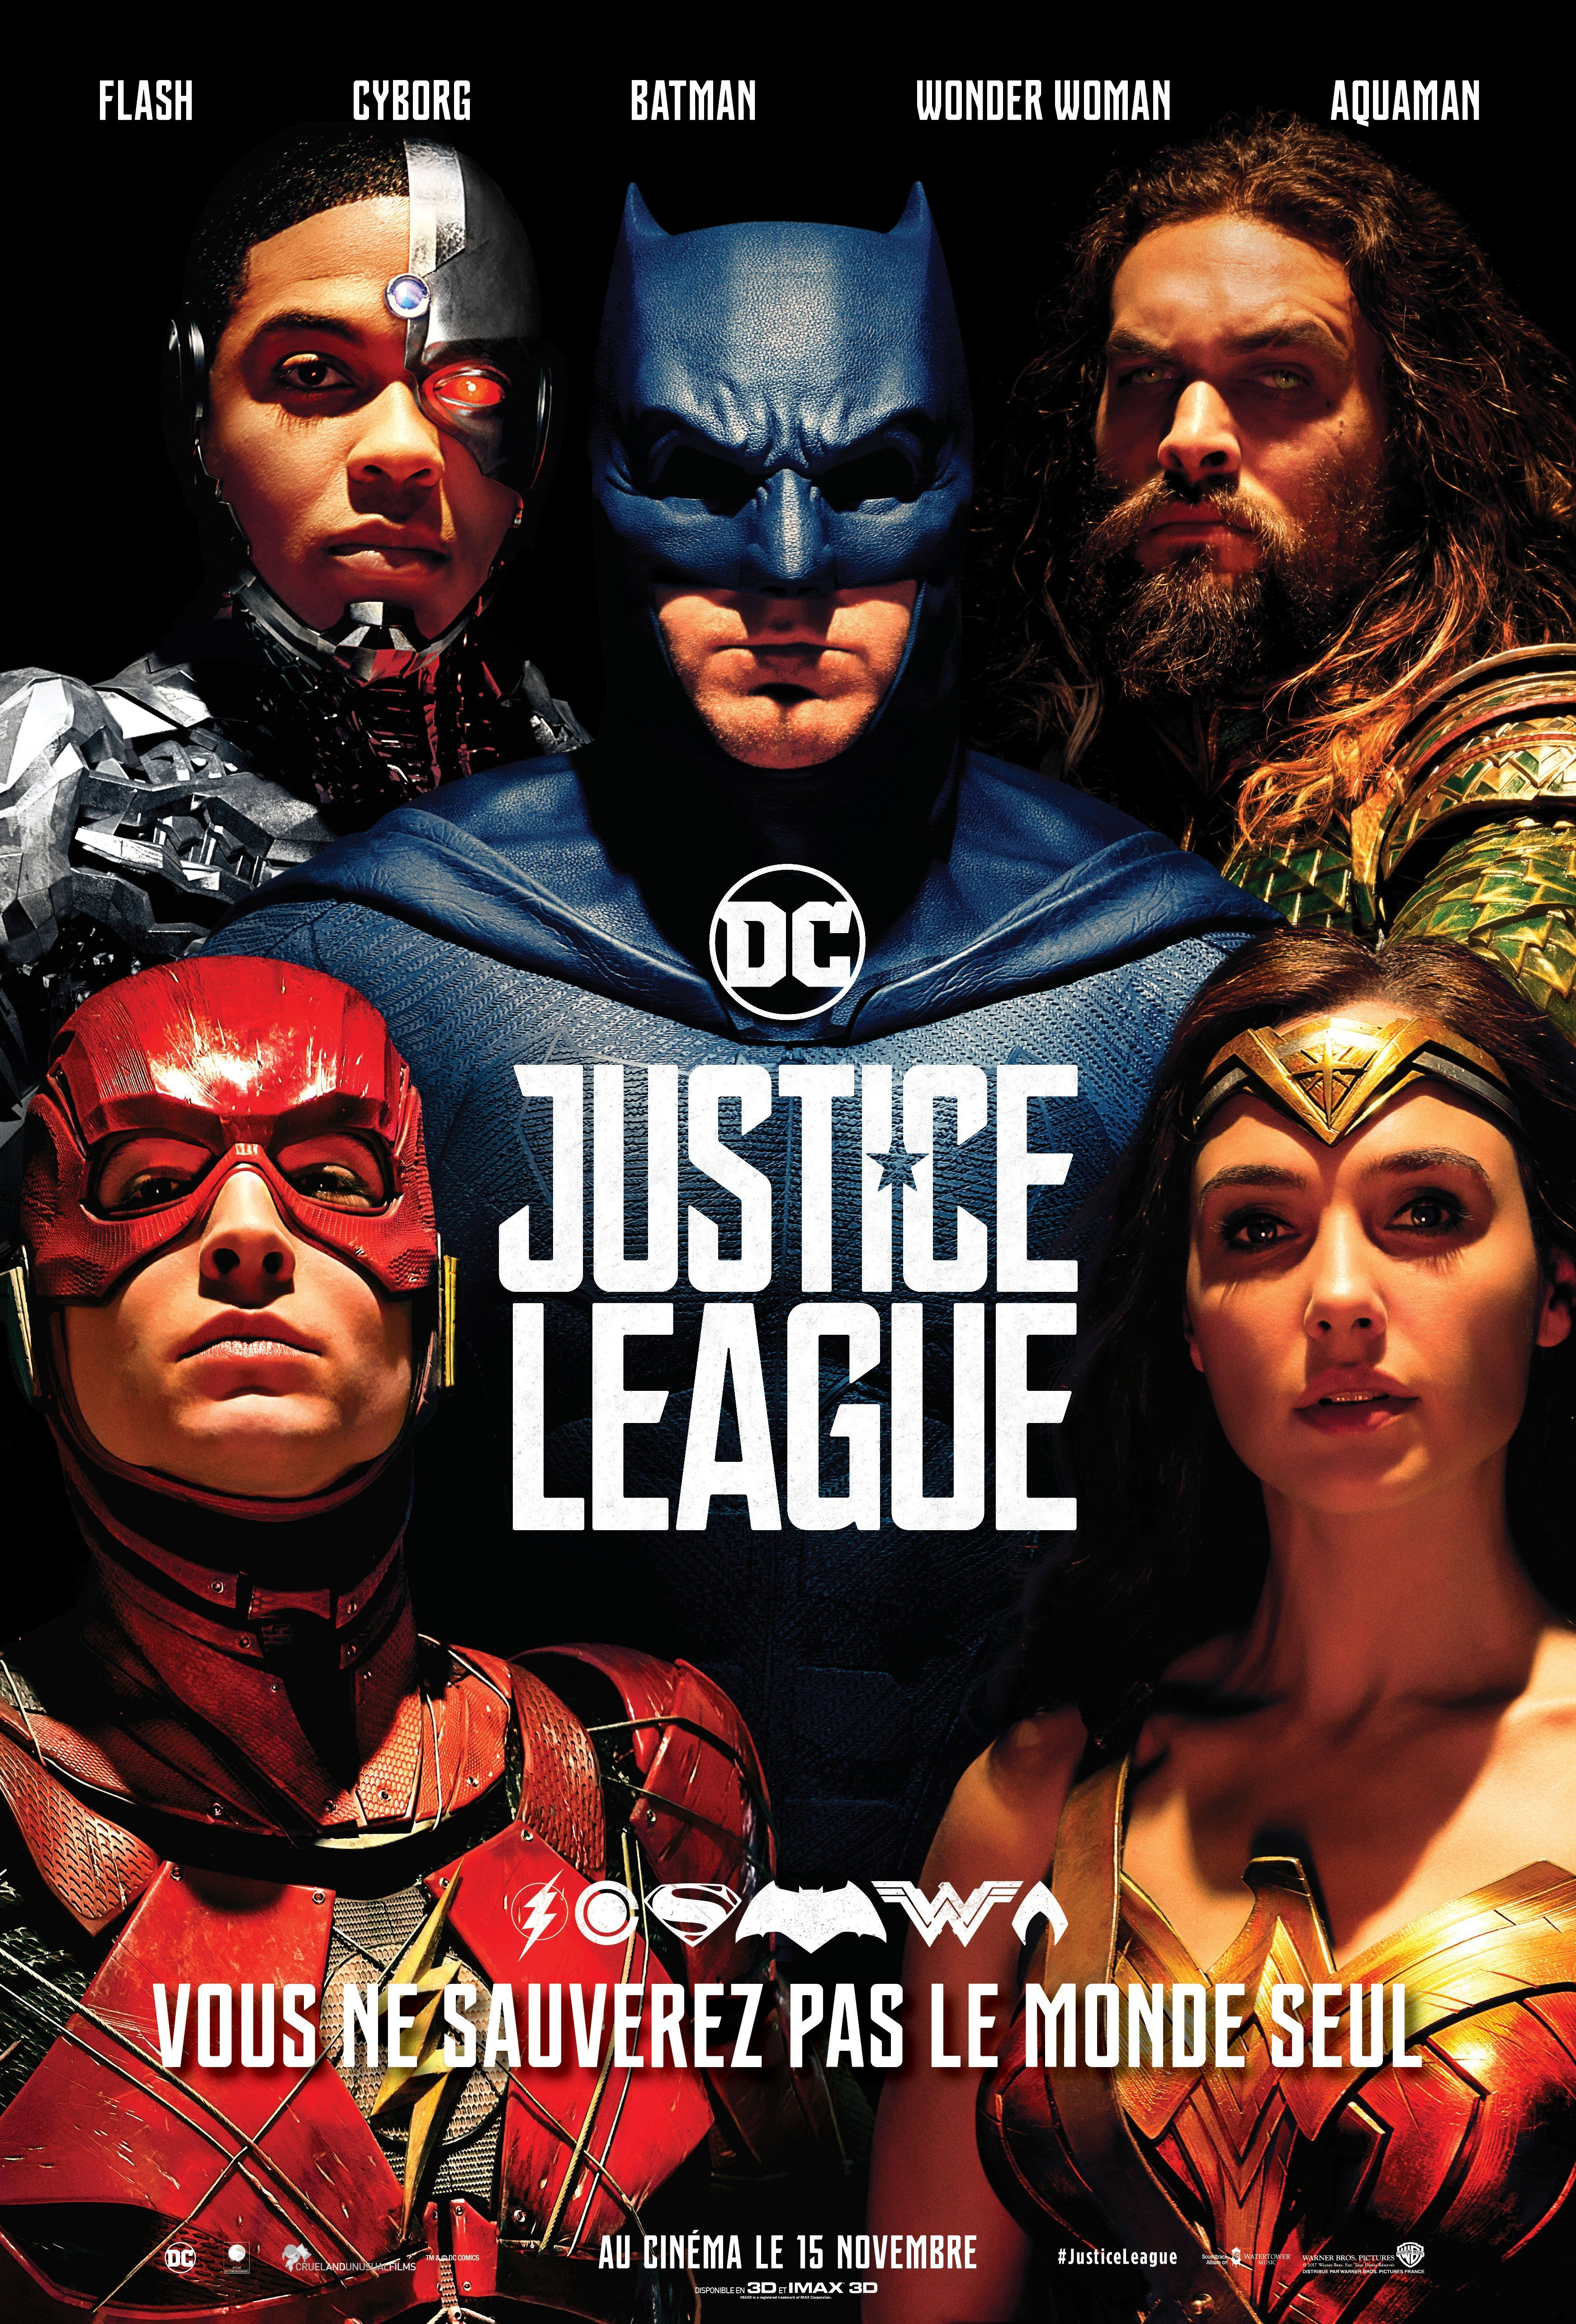 Affiche française du film Justice League avec Wonder Woman, Cyborg, Batman, Aquaman et Flash